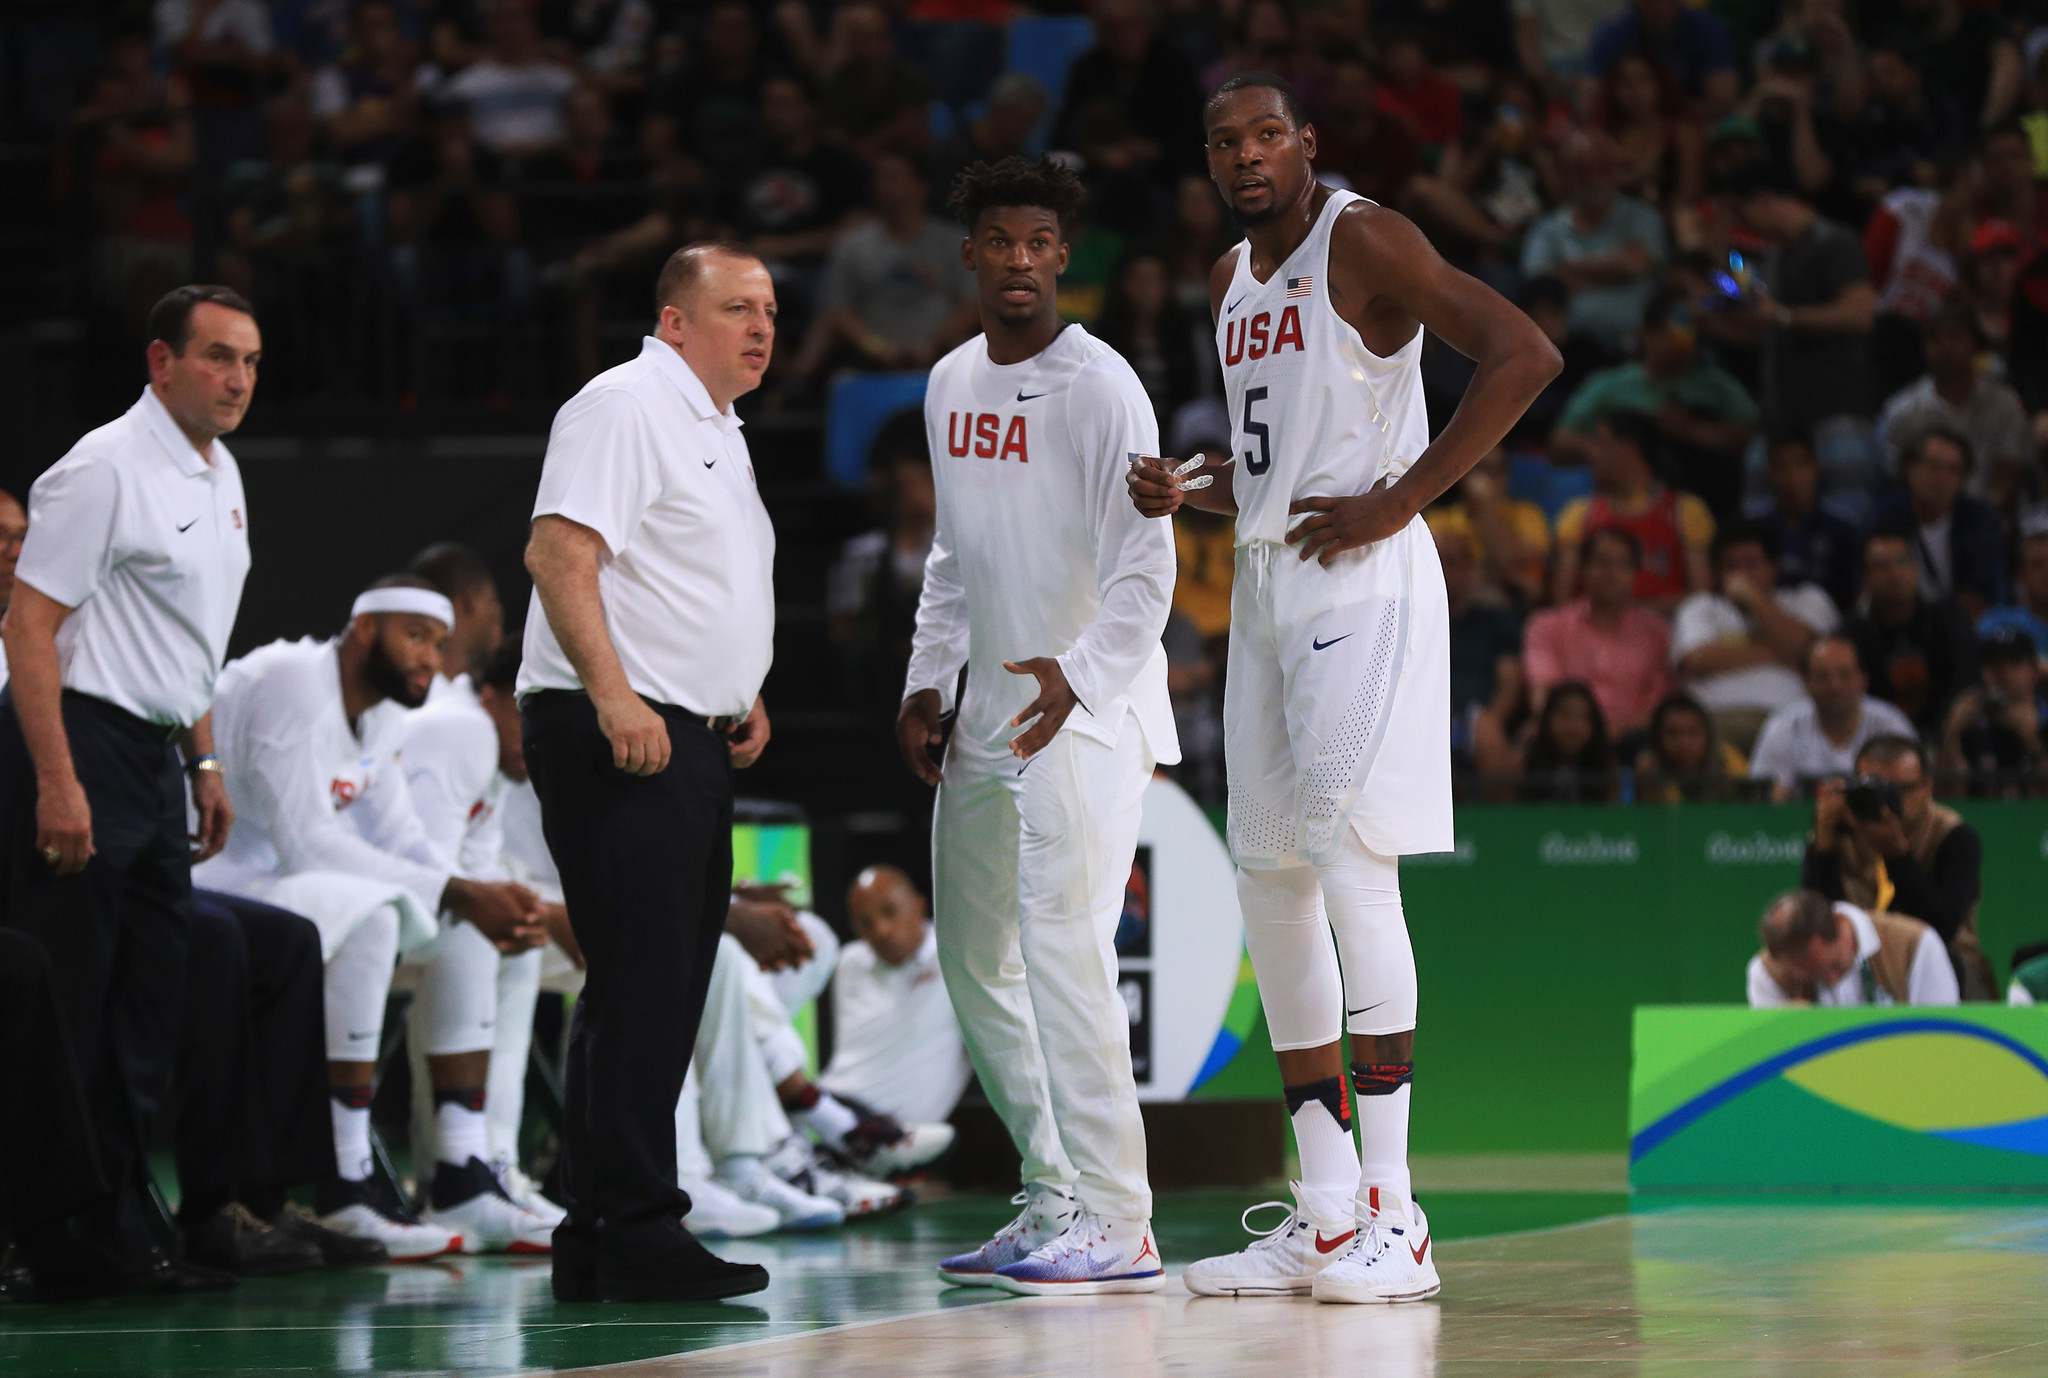 Ct-jimmy-butler-olympic-basketball-usa-serbia-spt-0821-20160820